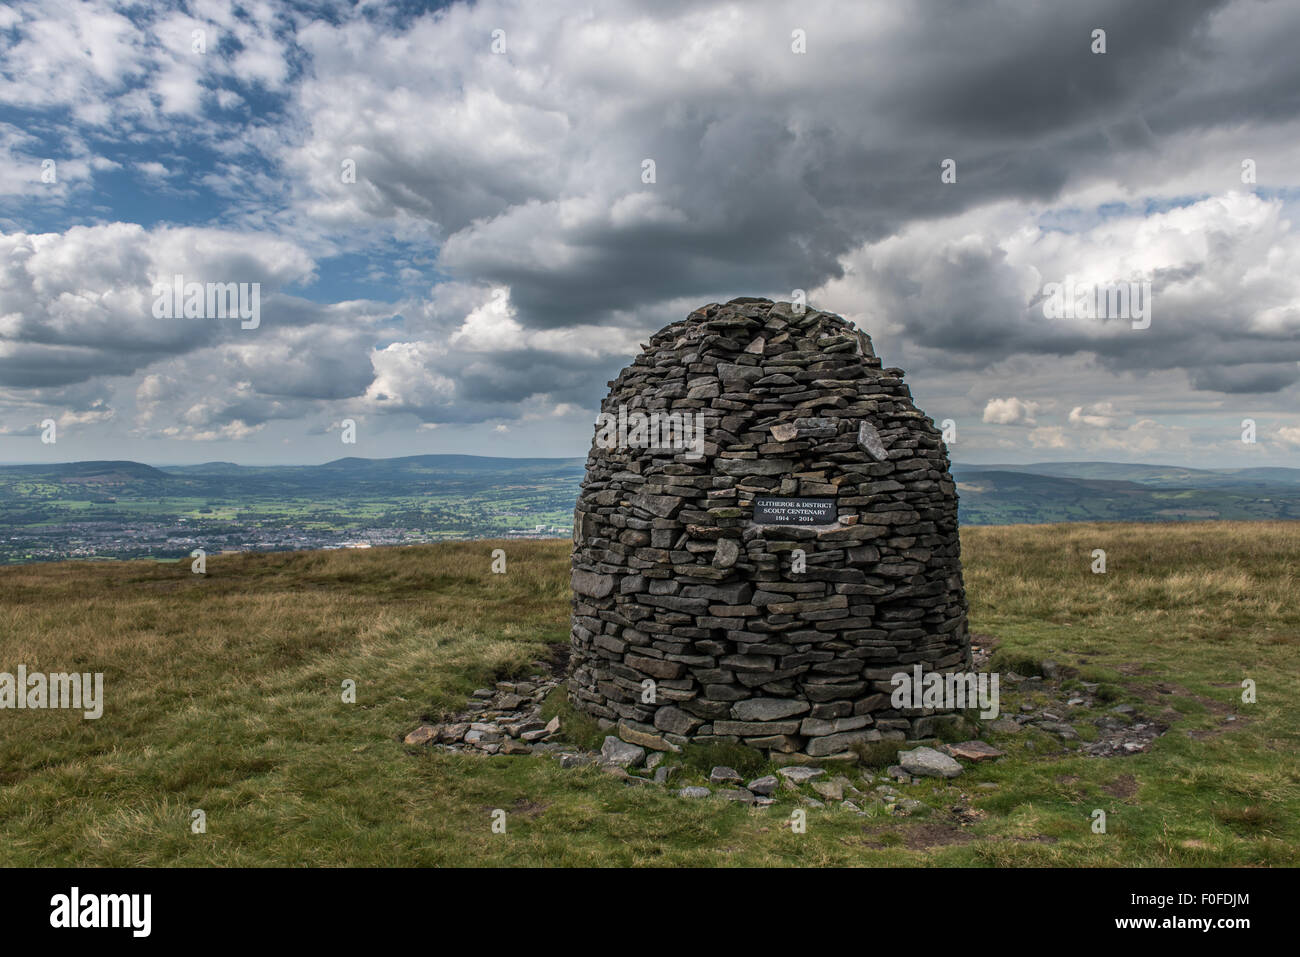 The Scouting Memorial Cairn on Pendle Hill Lancashire - Stock Image